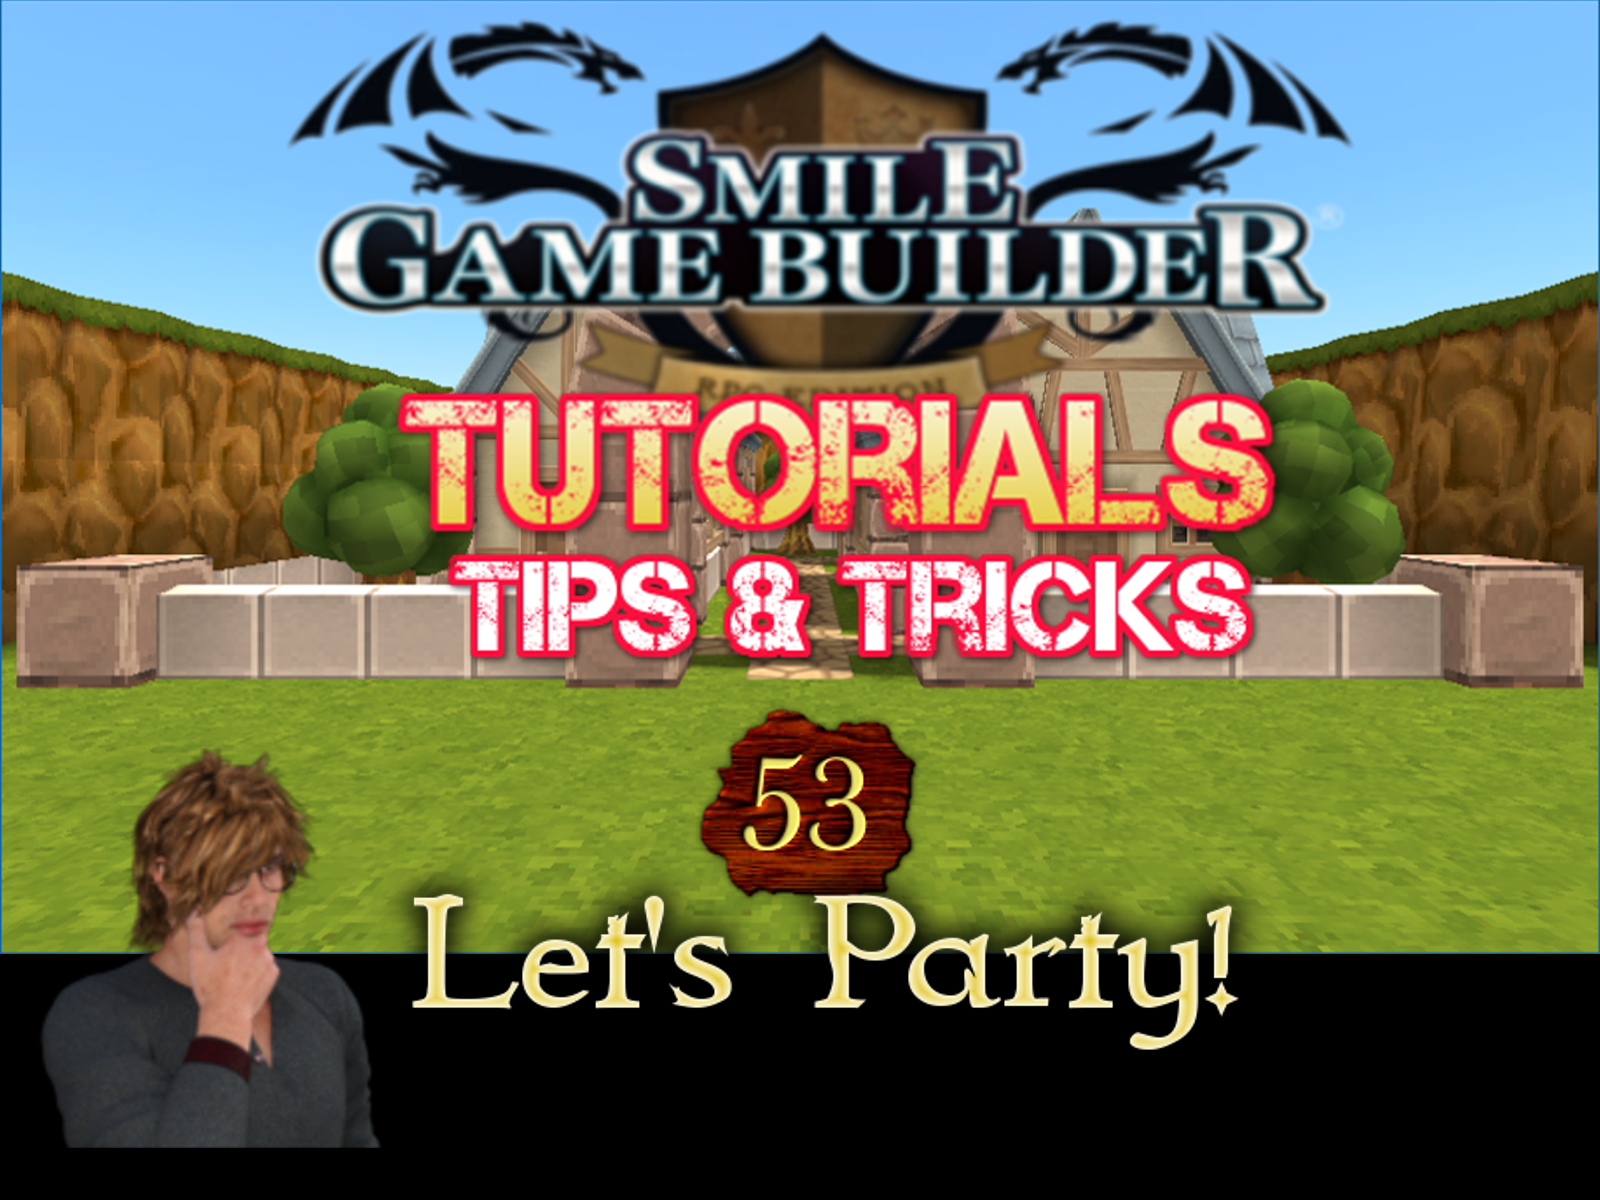 Smile Game Builder Tutorial 53 - Let's Party